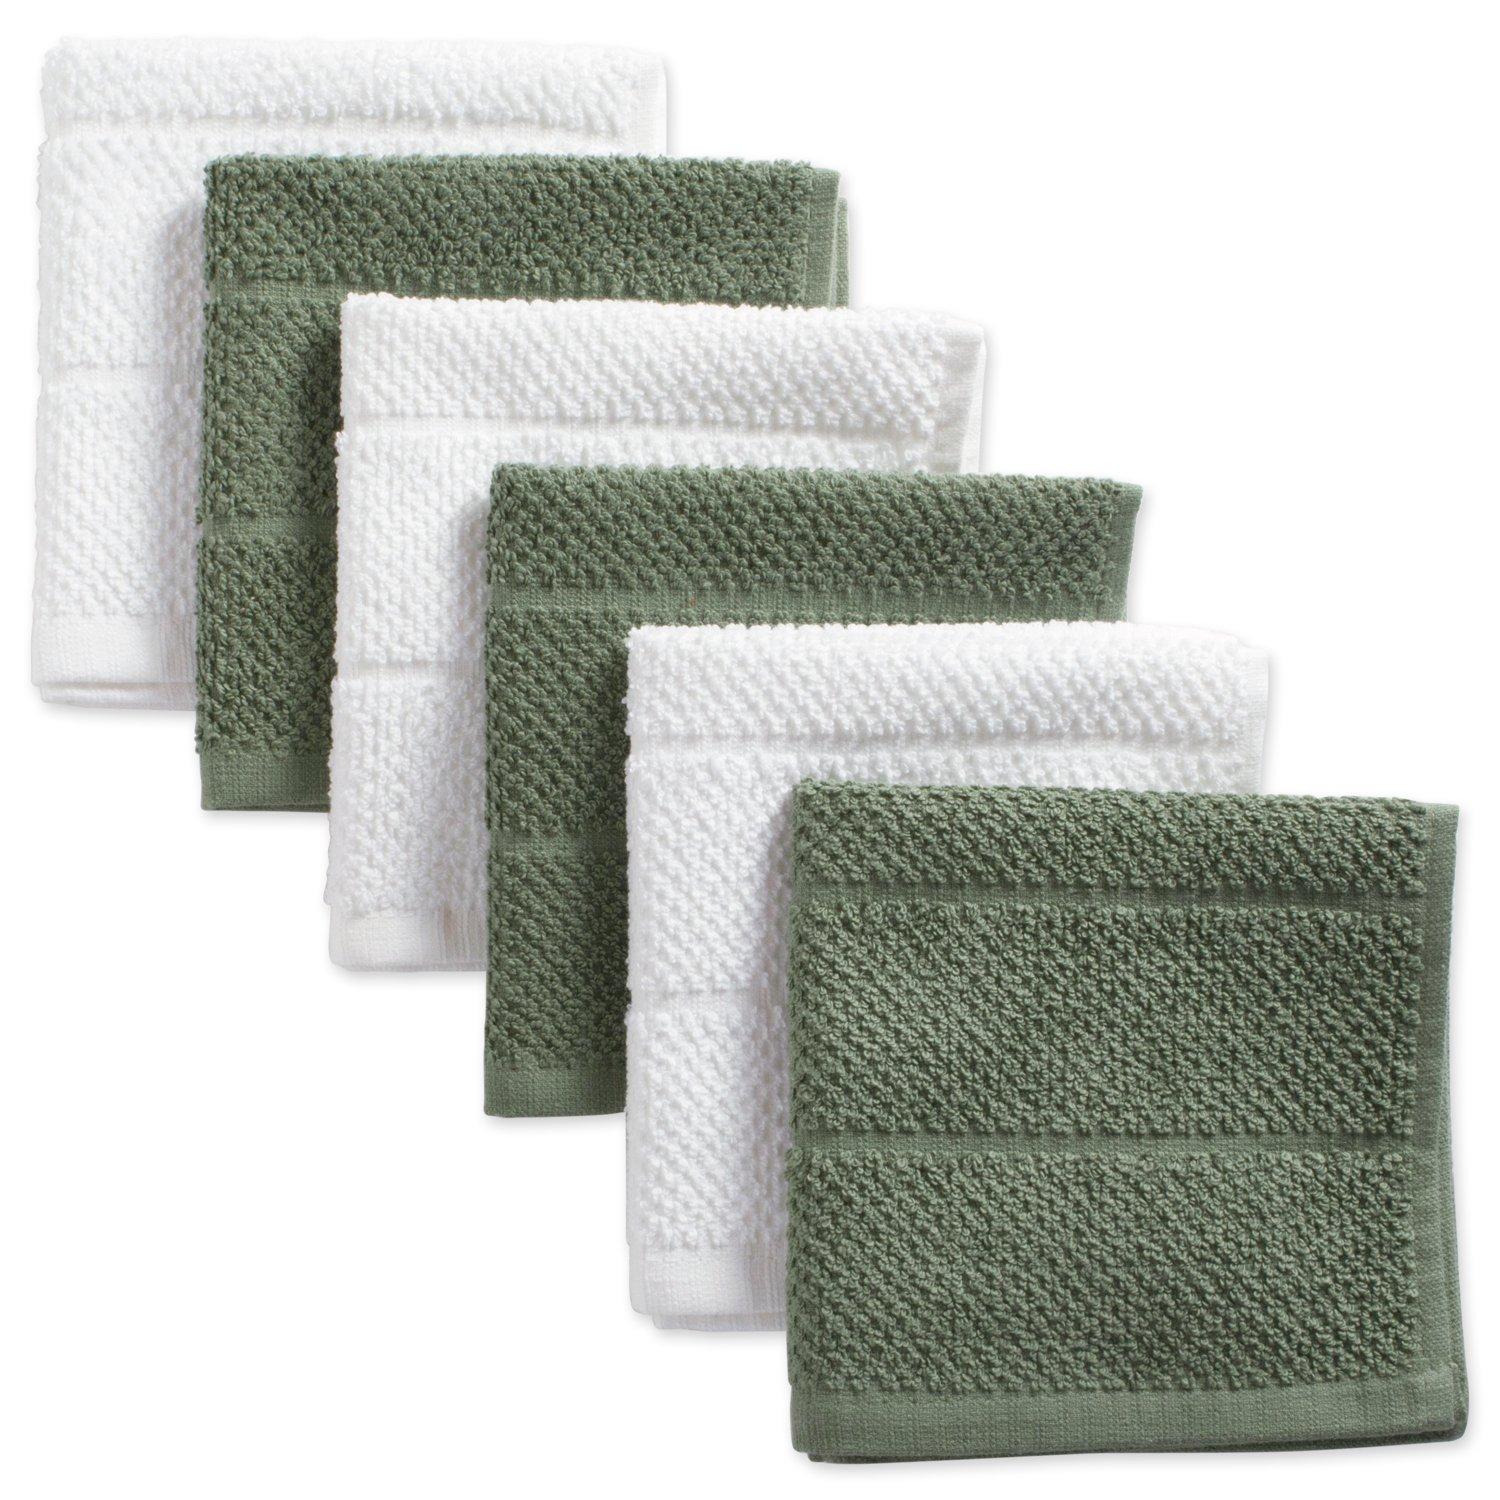 """DII Cotton Luxury Chef Terry Dish Cloths, 12 x 12"""" Set of 6, Ultra-Absorbent Cleaning Drying Kitchen Towels-Artichoke Green/White"""